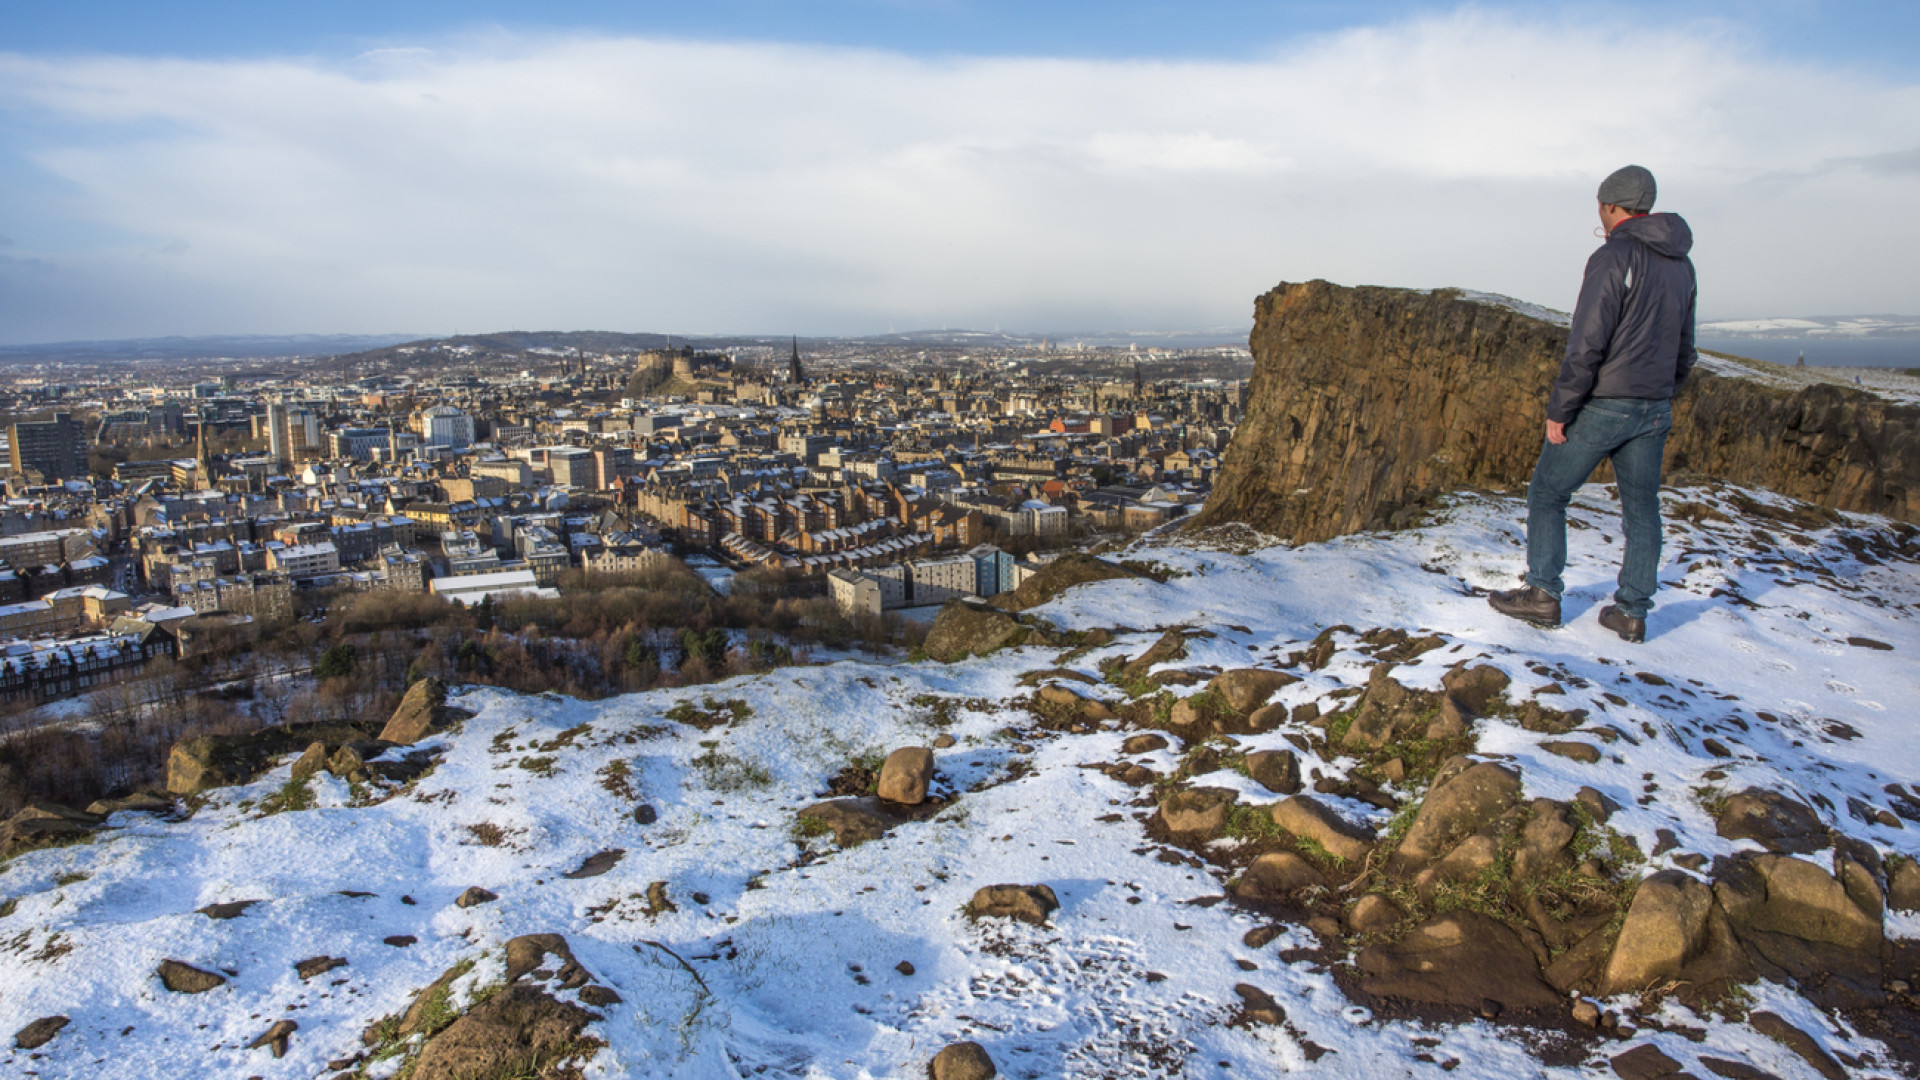 Looking over to the city of Edinburgh from Salisbury Crags in winter